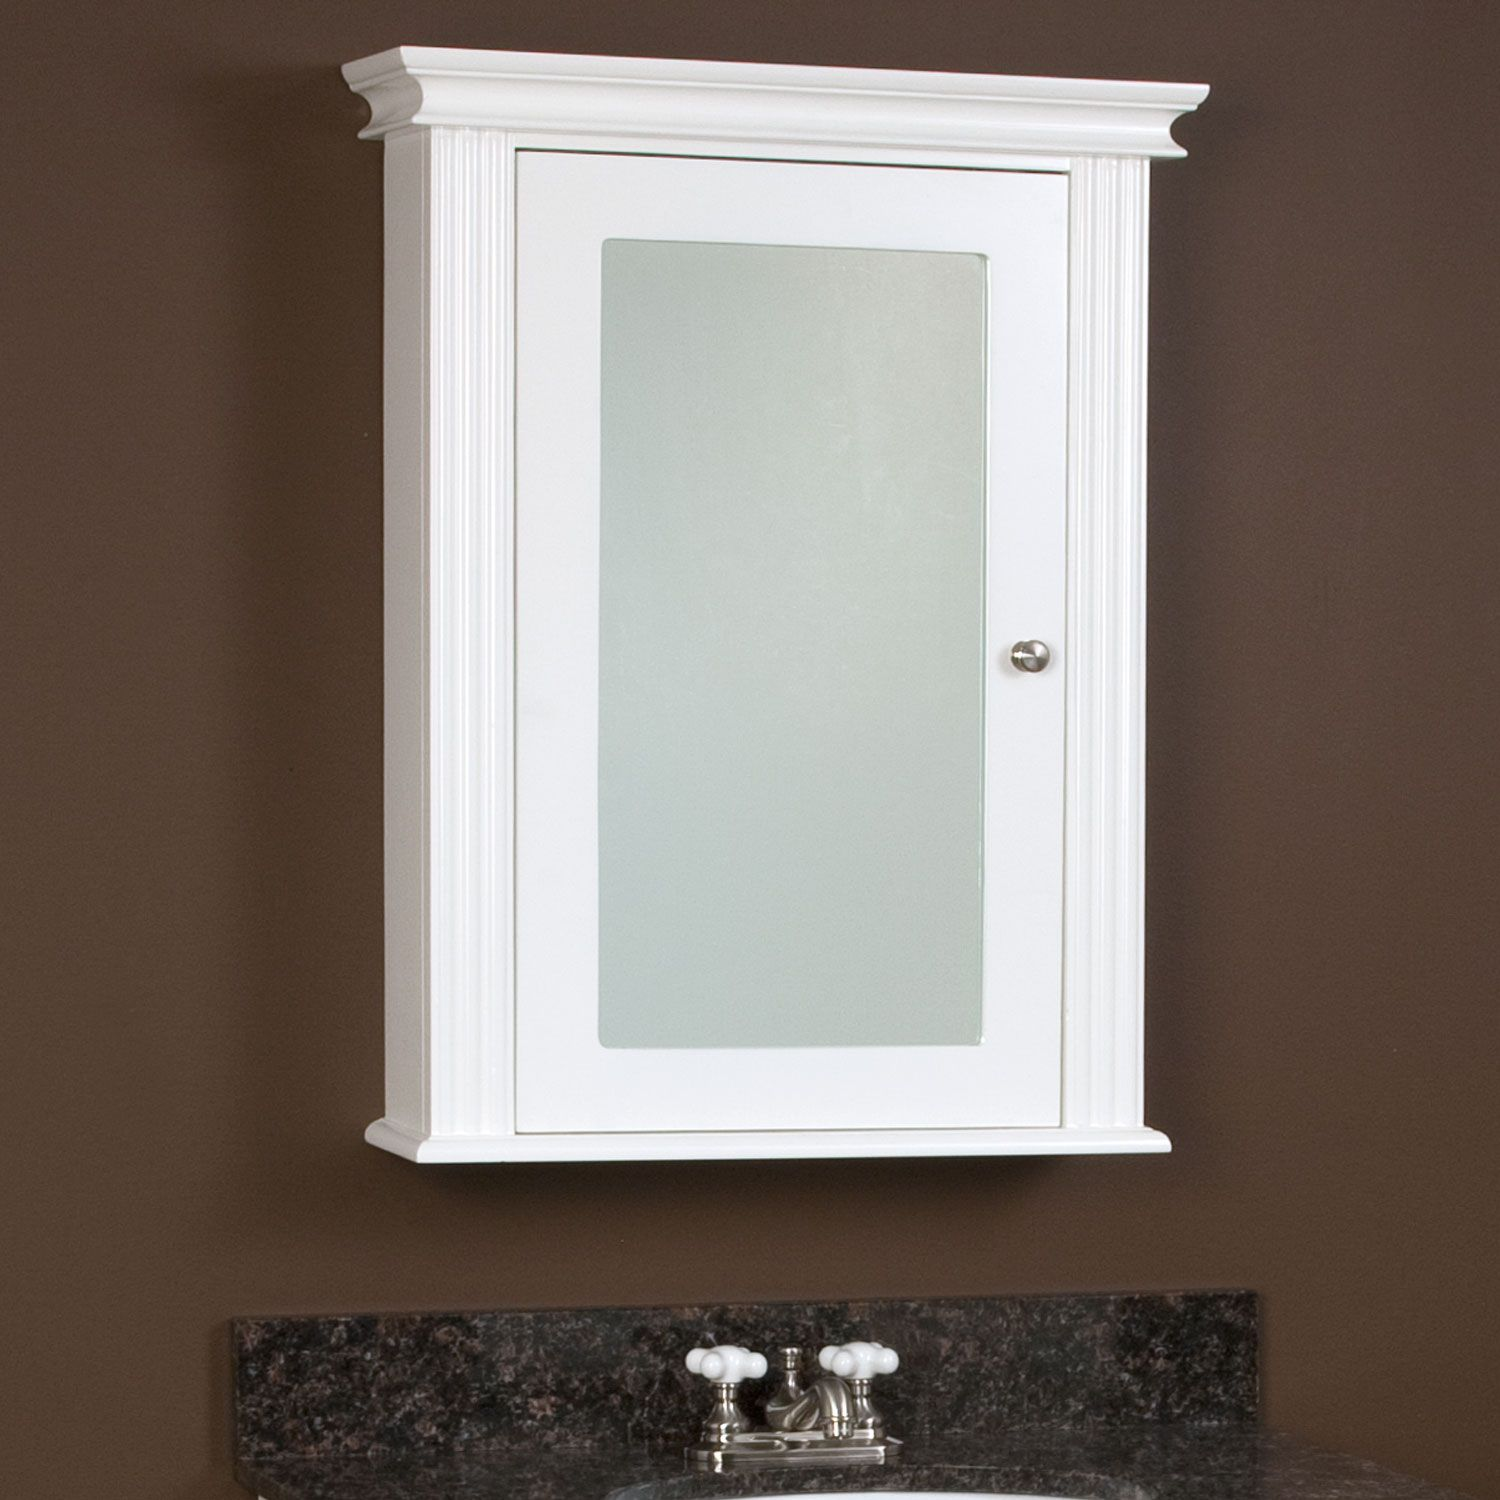 Small Bathroom Medicine Cabinet - What is the Best Interior Paint ...